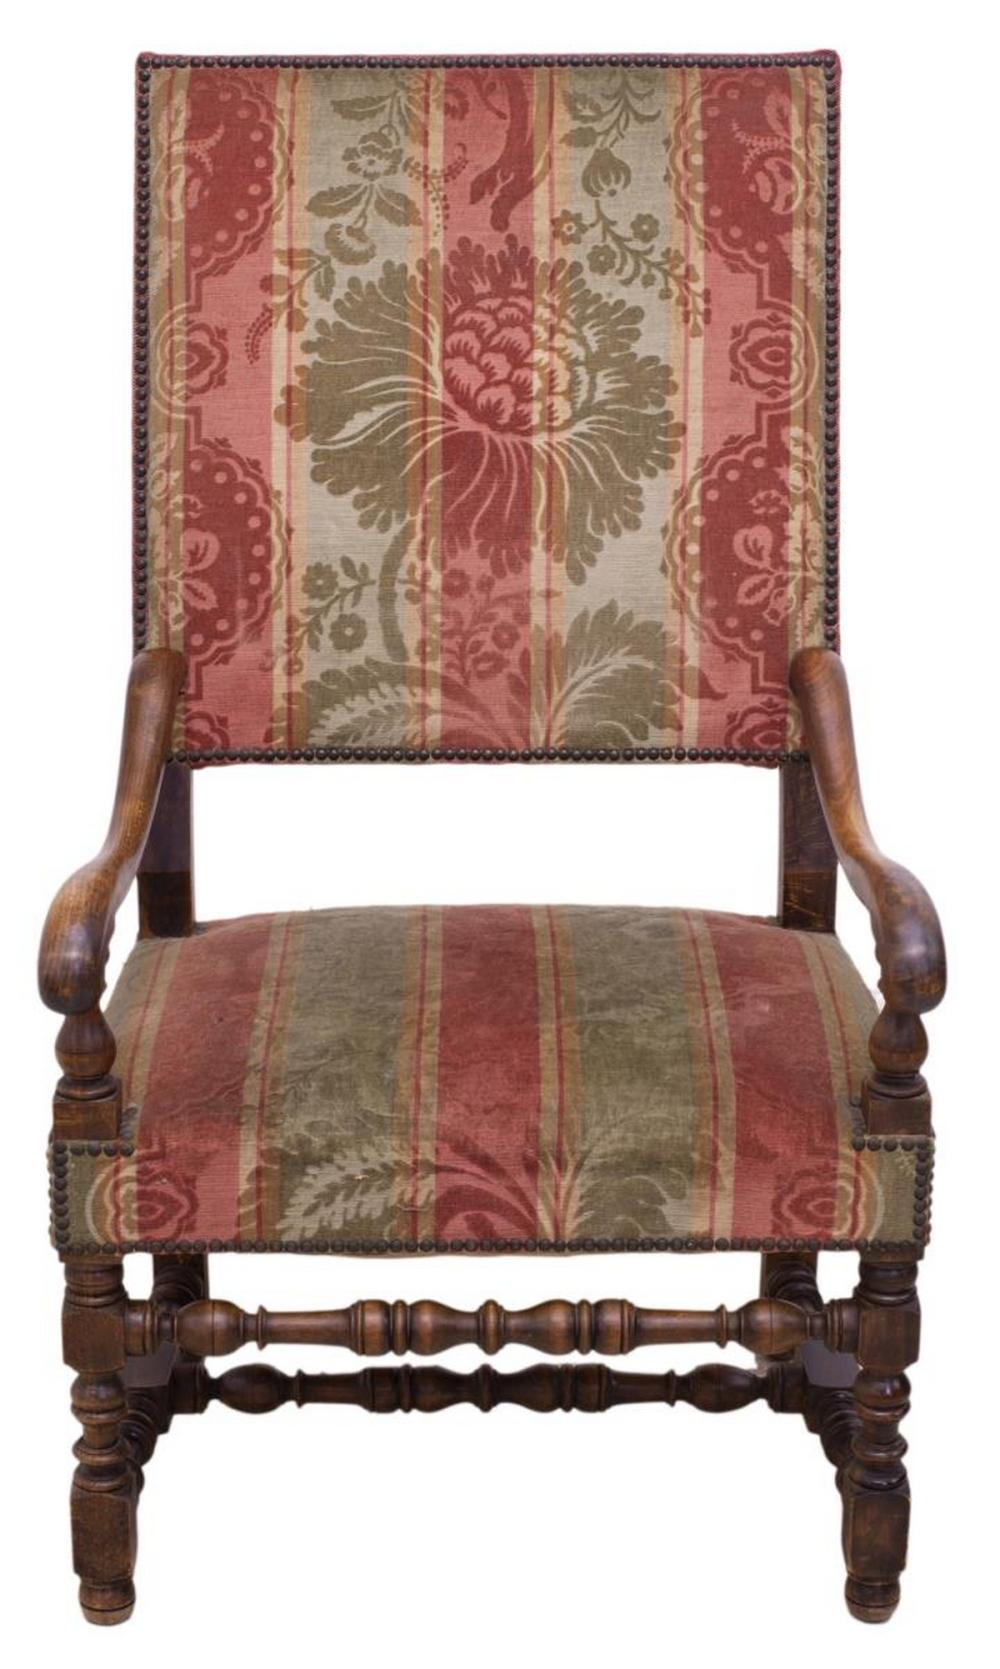 Fauteuils Louis 13 Louis Xiii Style High Back Upholstered Fauteuil